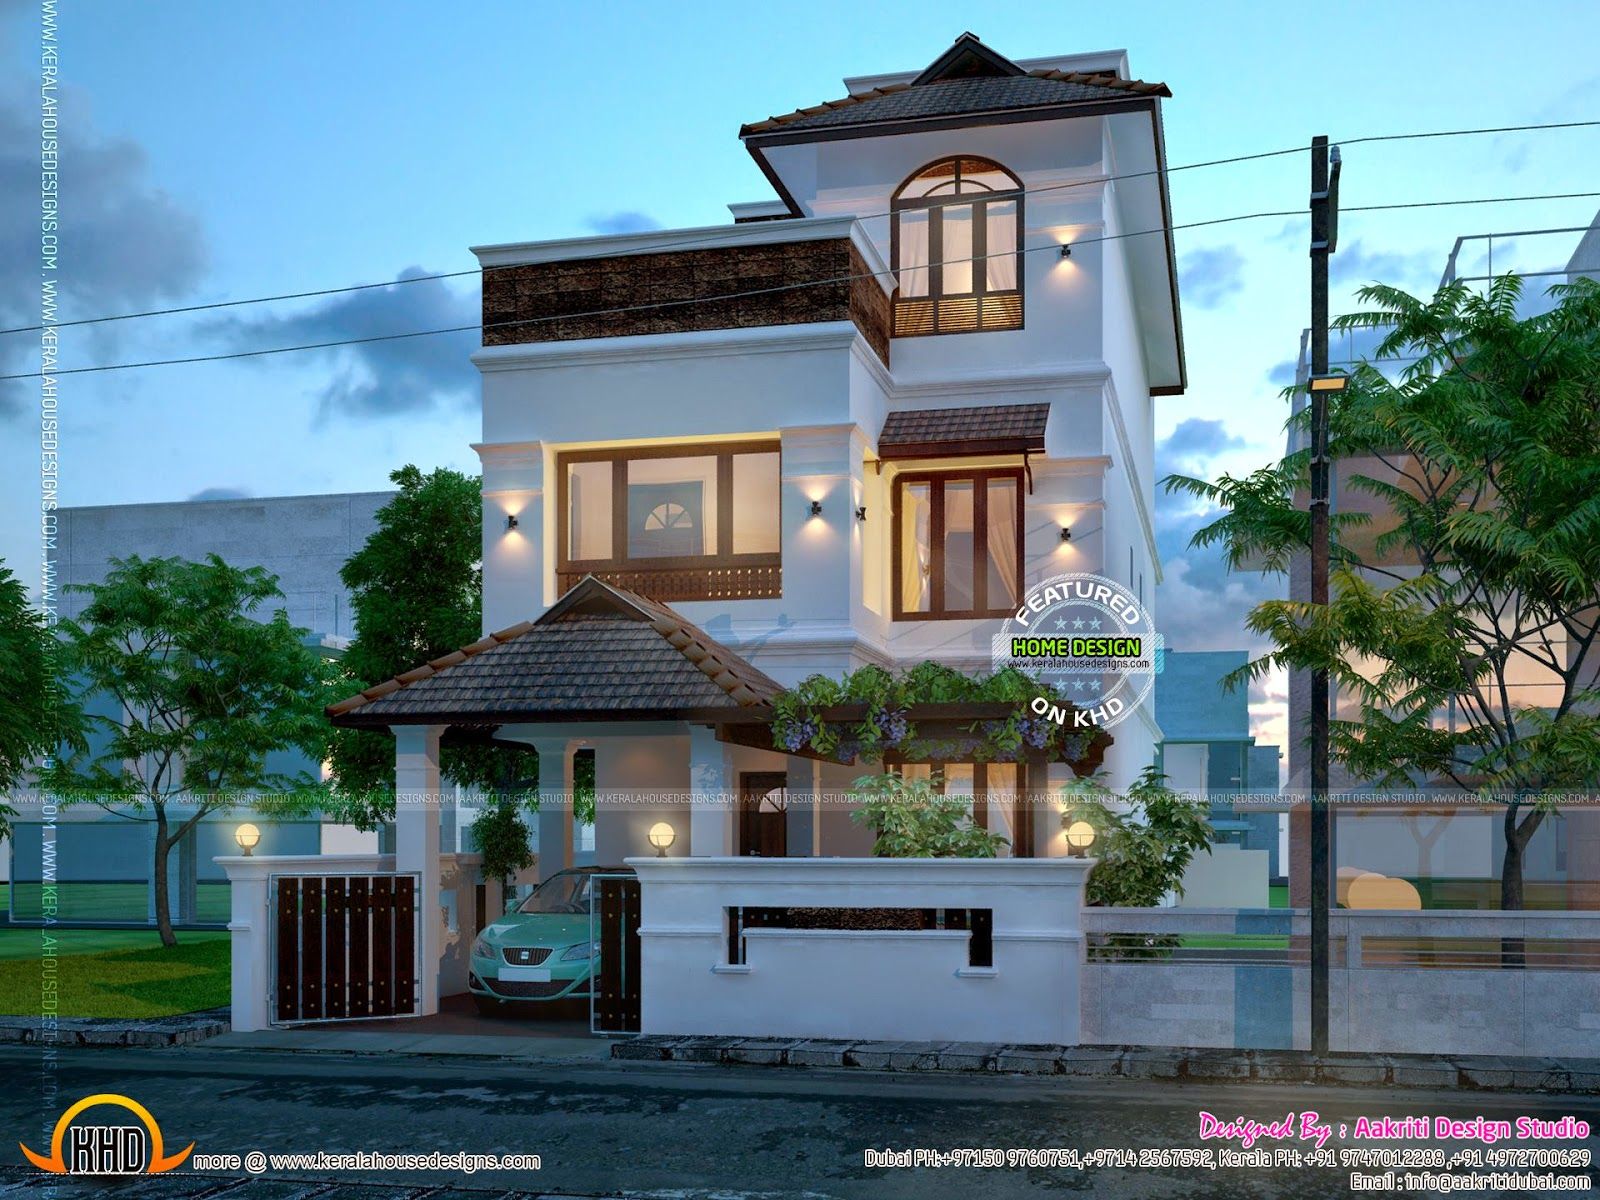 New house design kerala home design and floor plans for Designing your new home